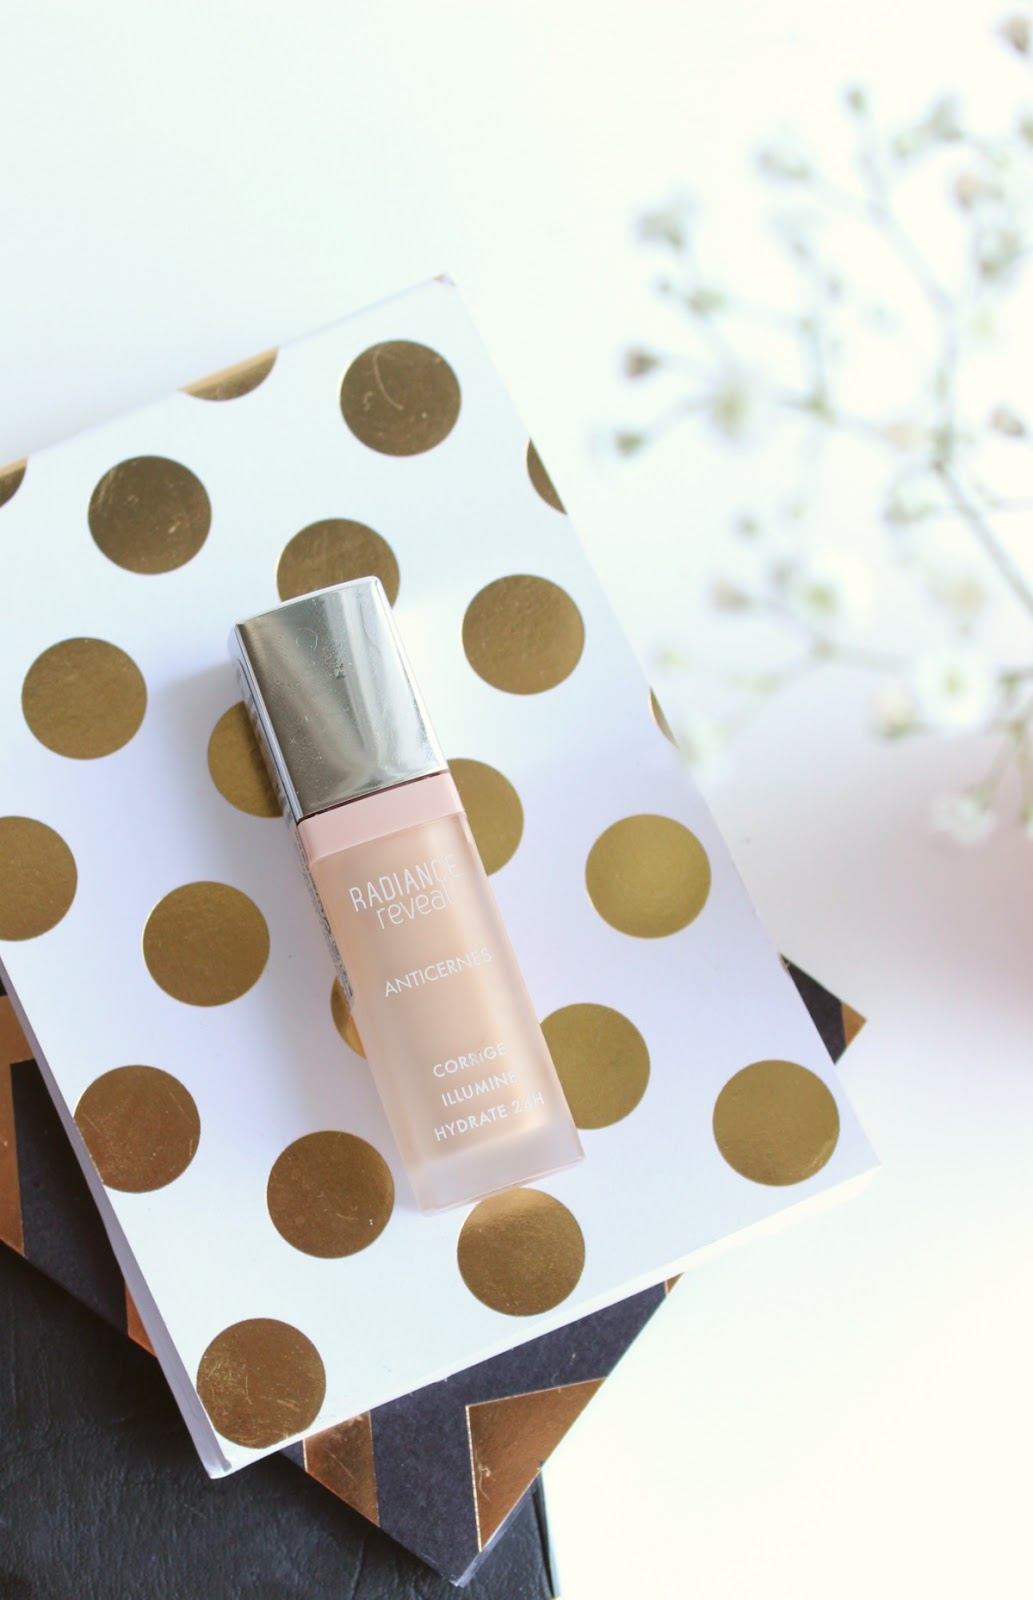 Bourjois Radiance Reveal Concealer Review